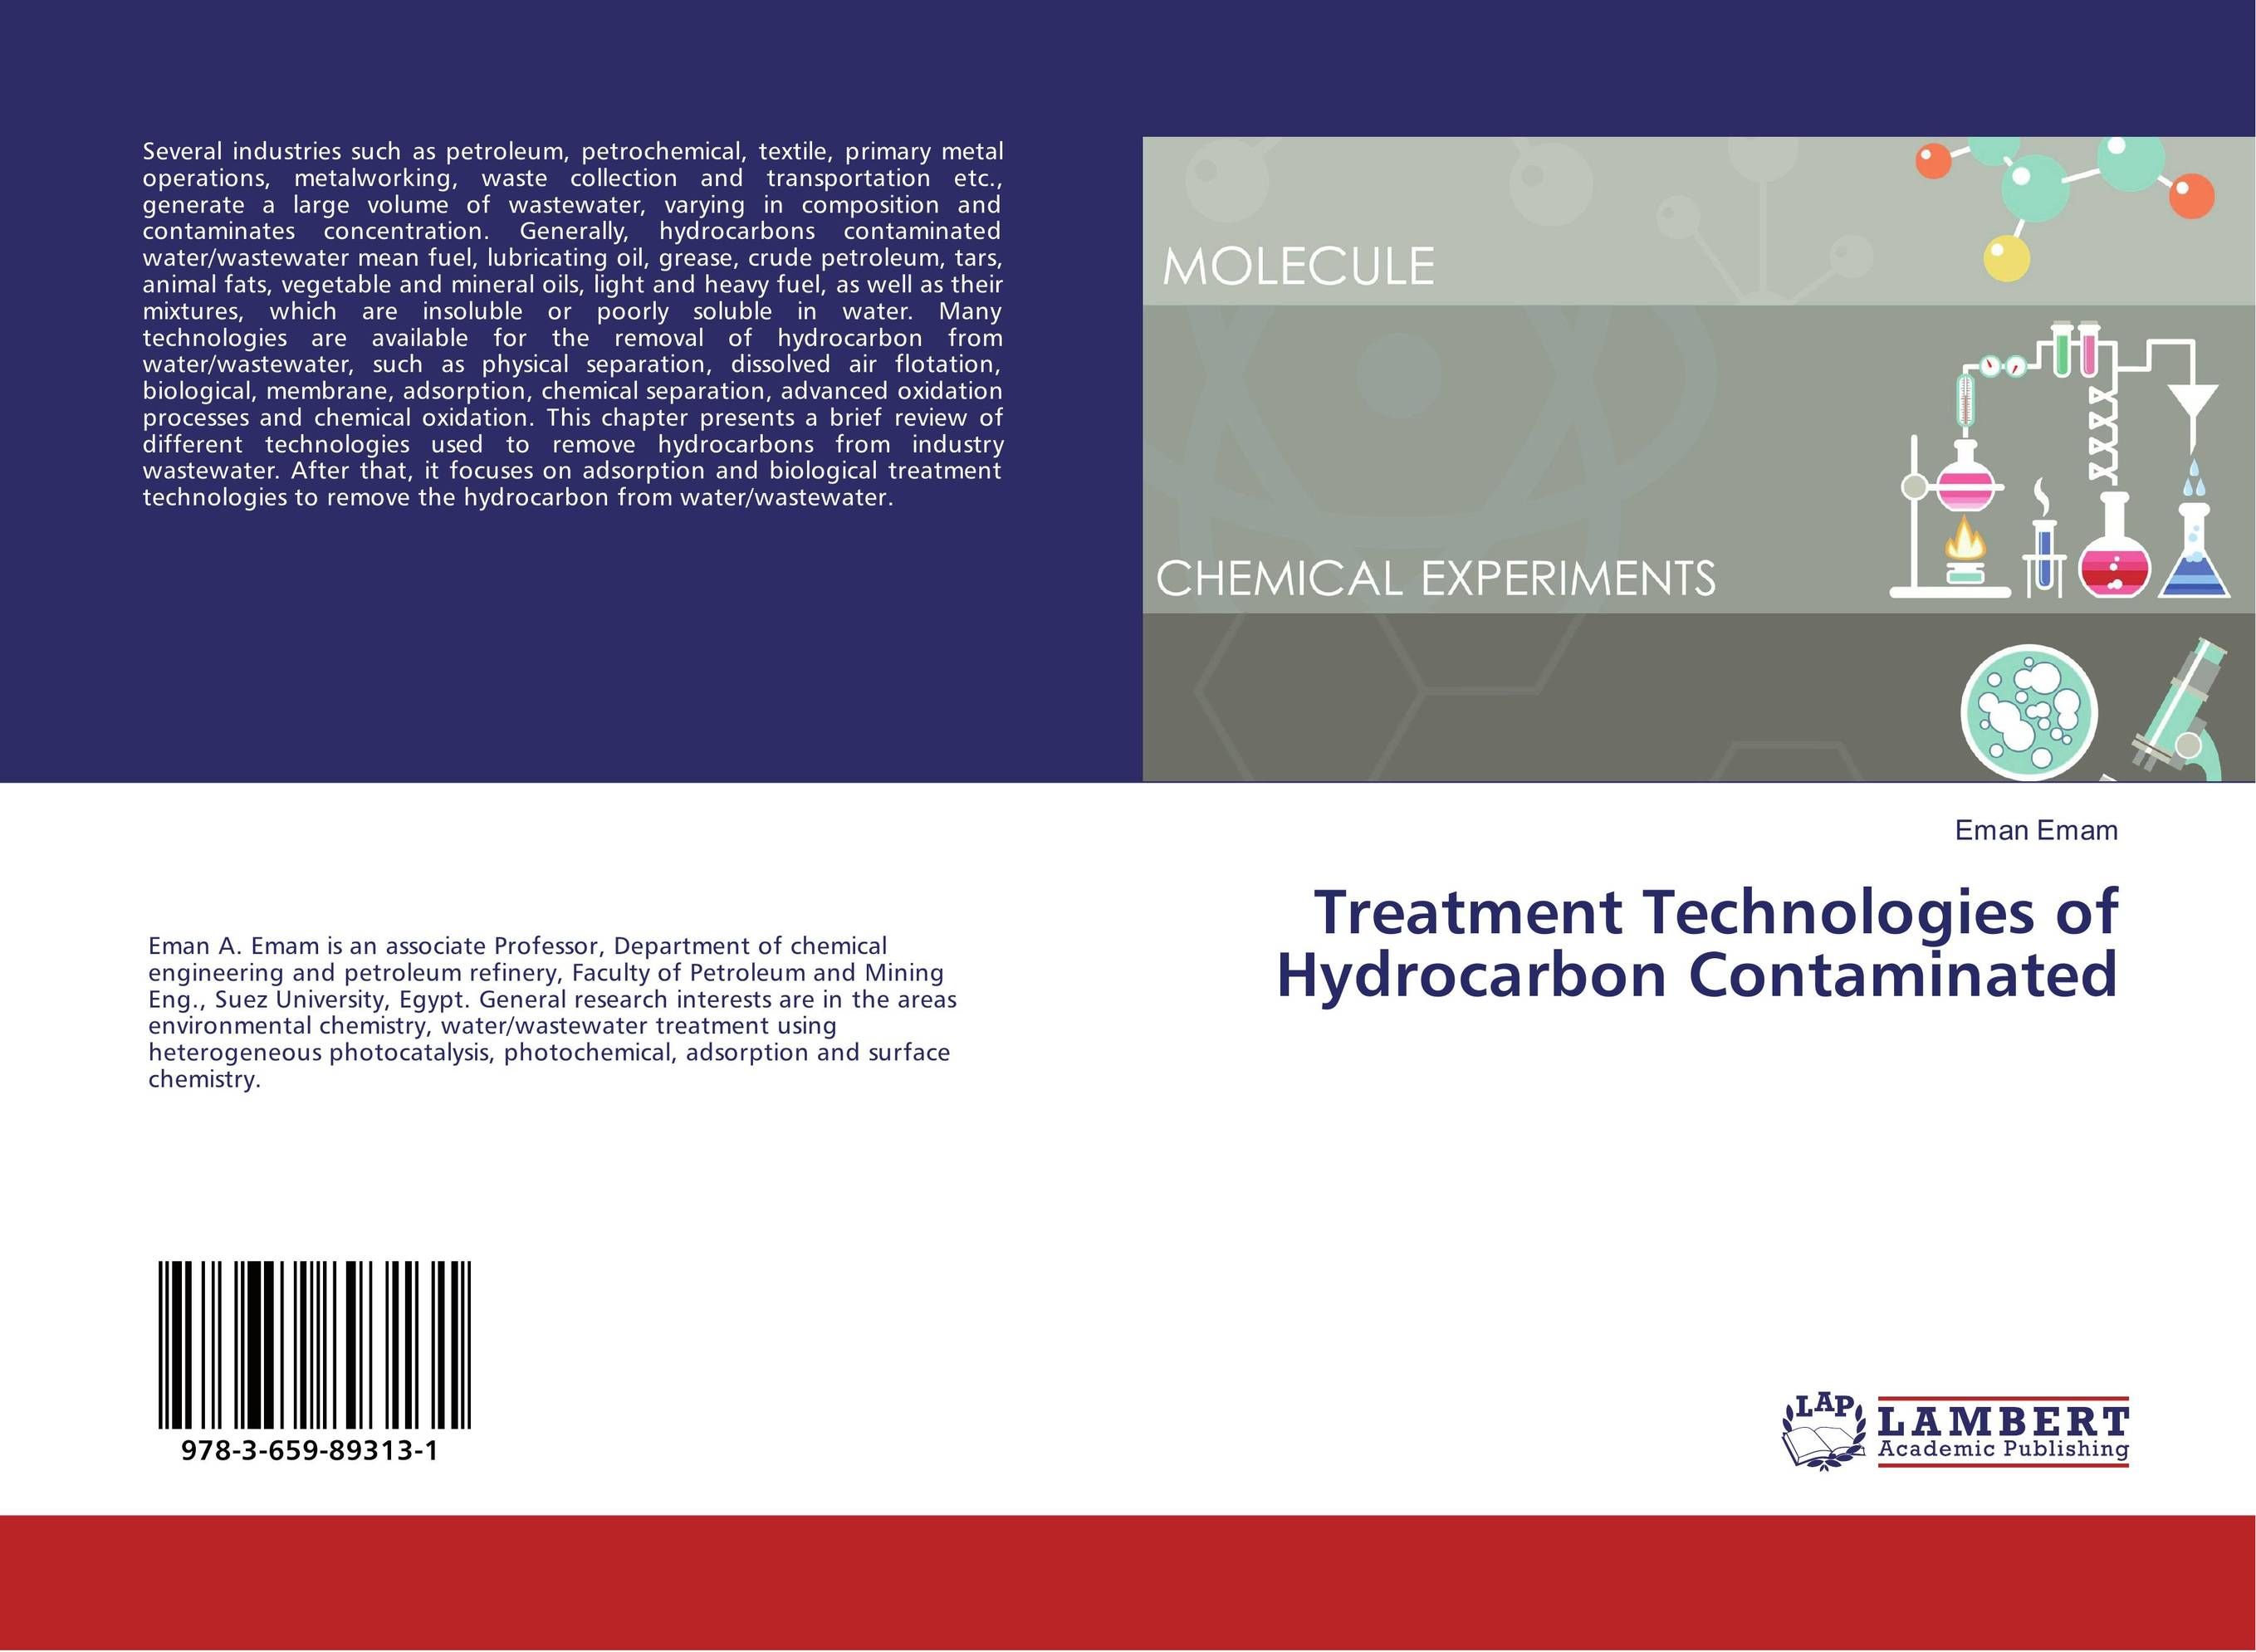 Treatment Technologies of Hydrocarbon Contaminated